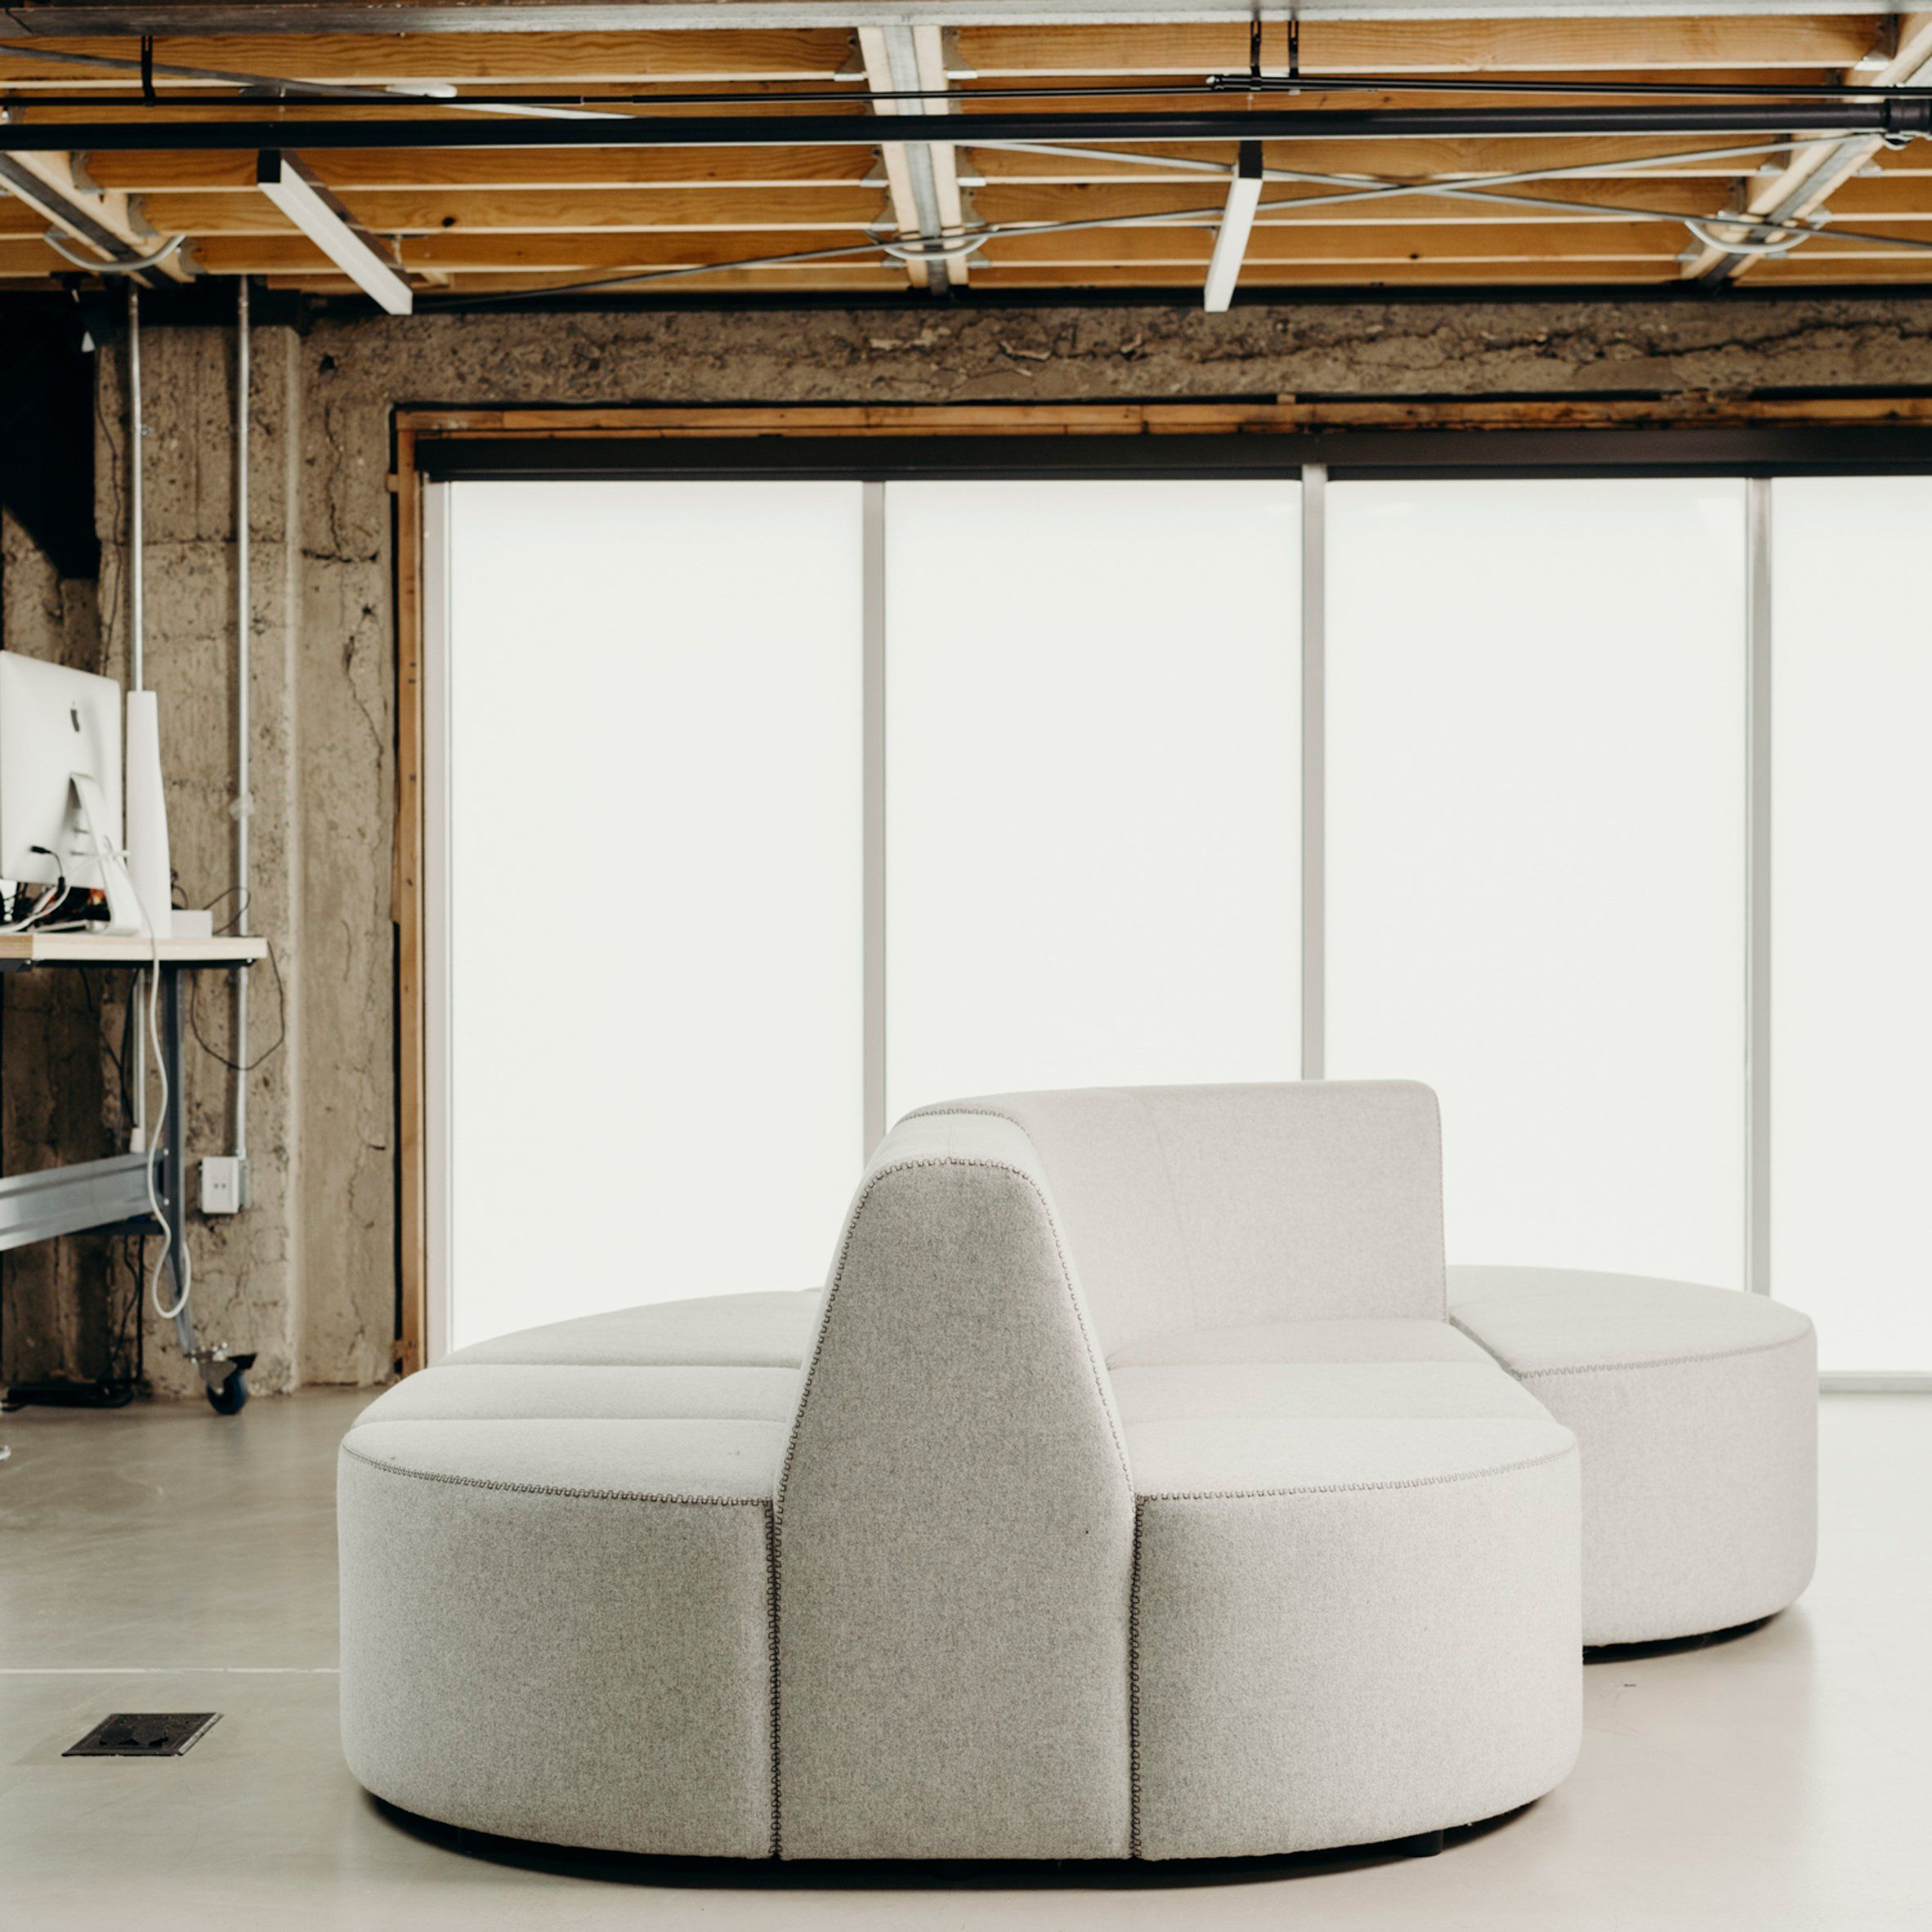 Joe Gebbia Who Co Founded Home Rental Website Airbnb Has  # Muebles Modulares Lukar